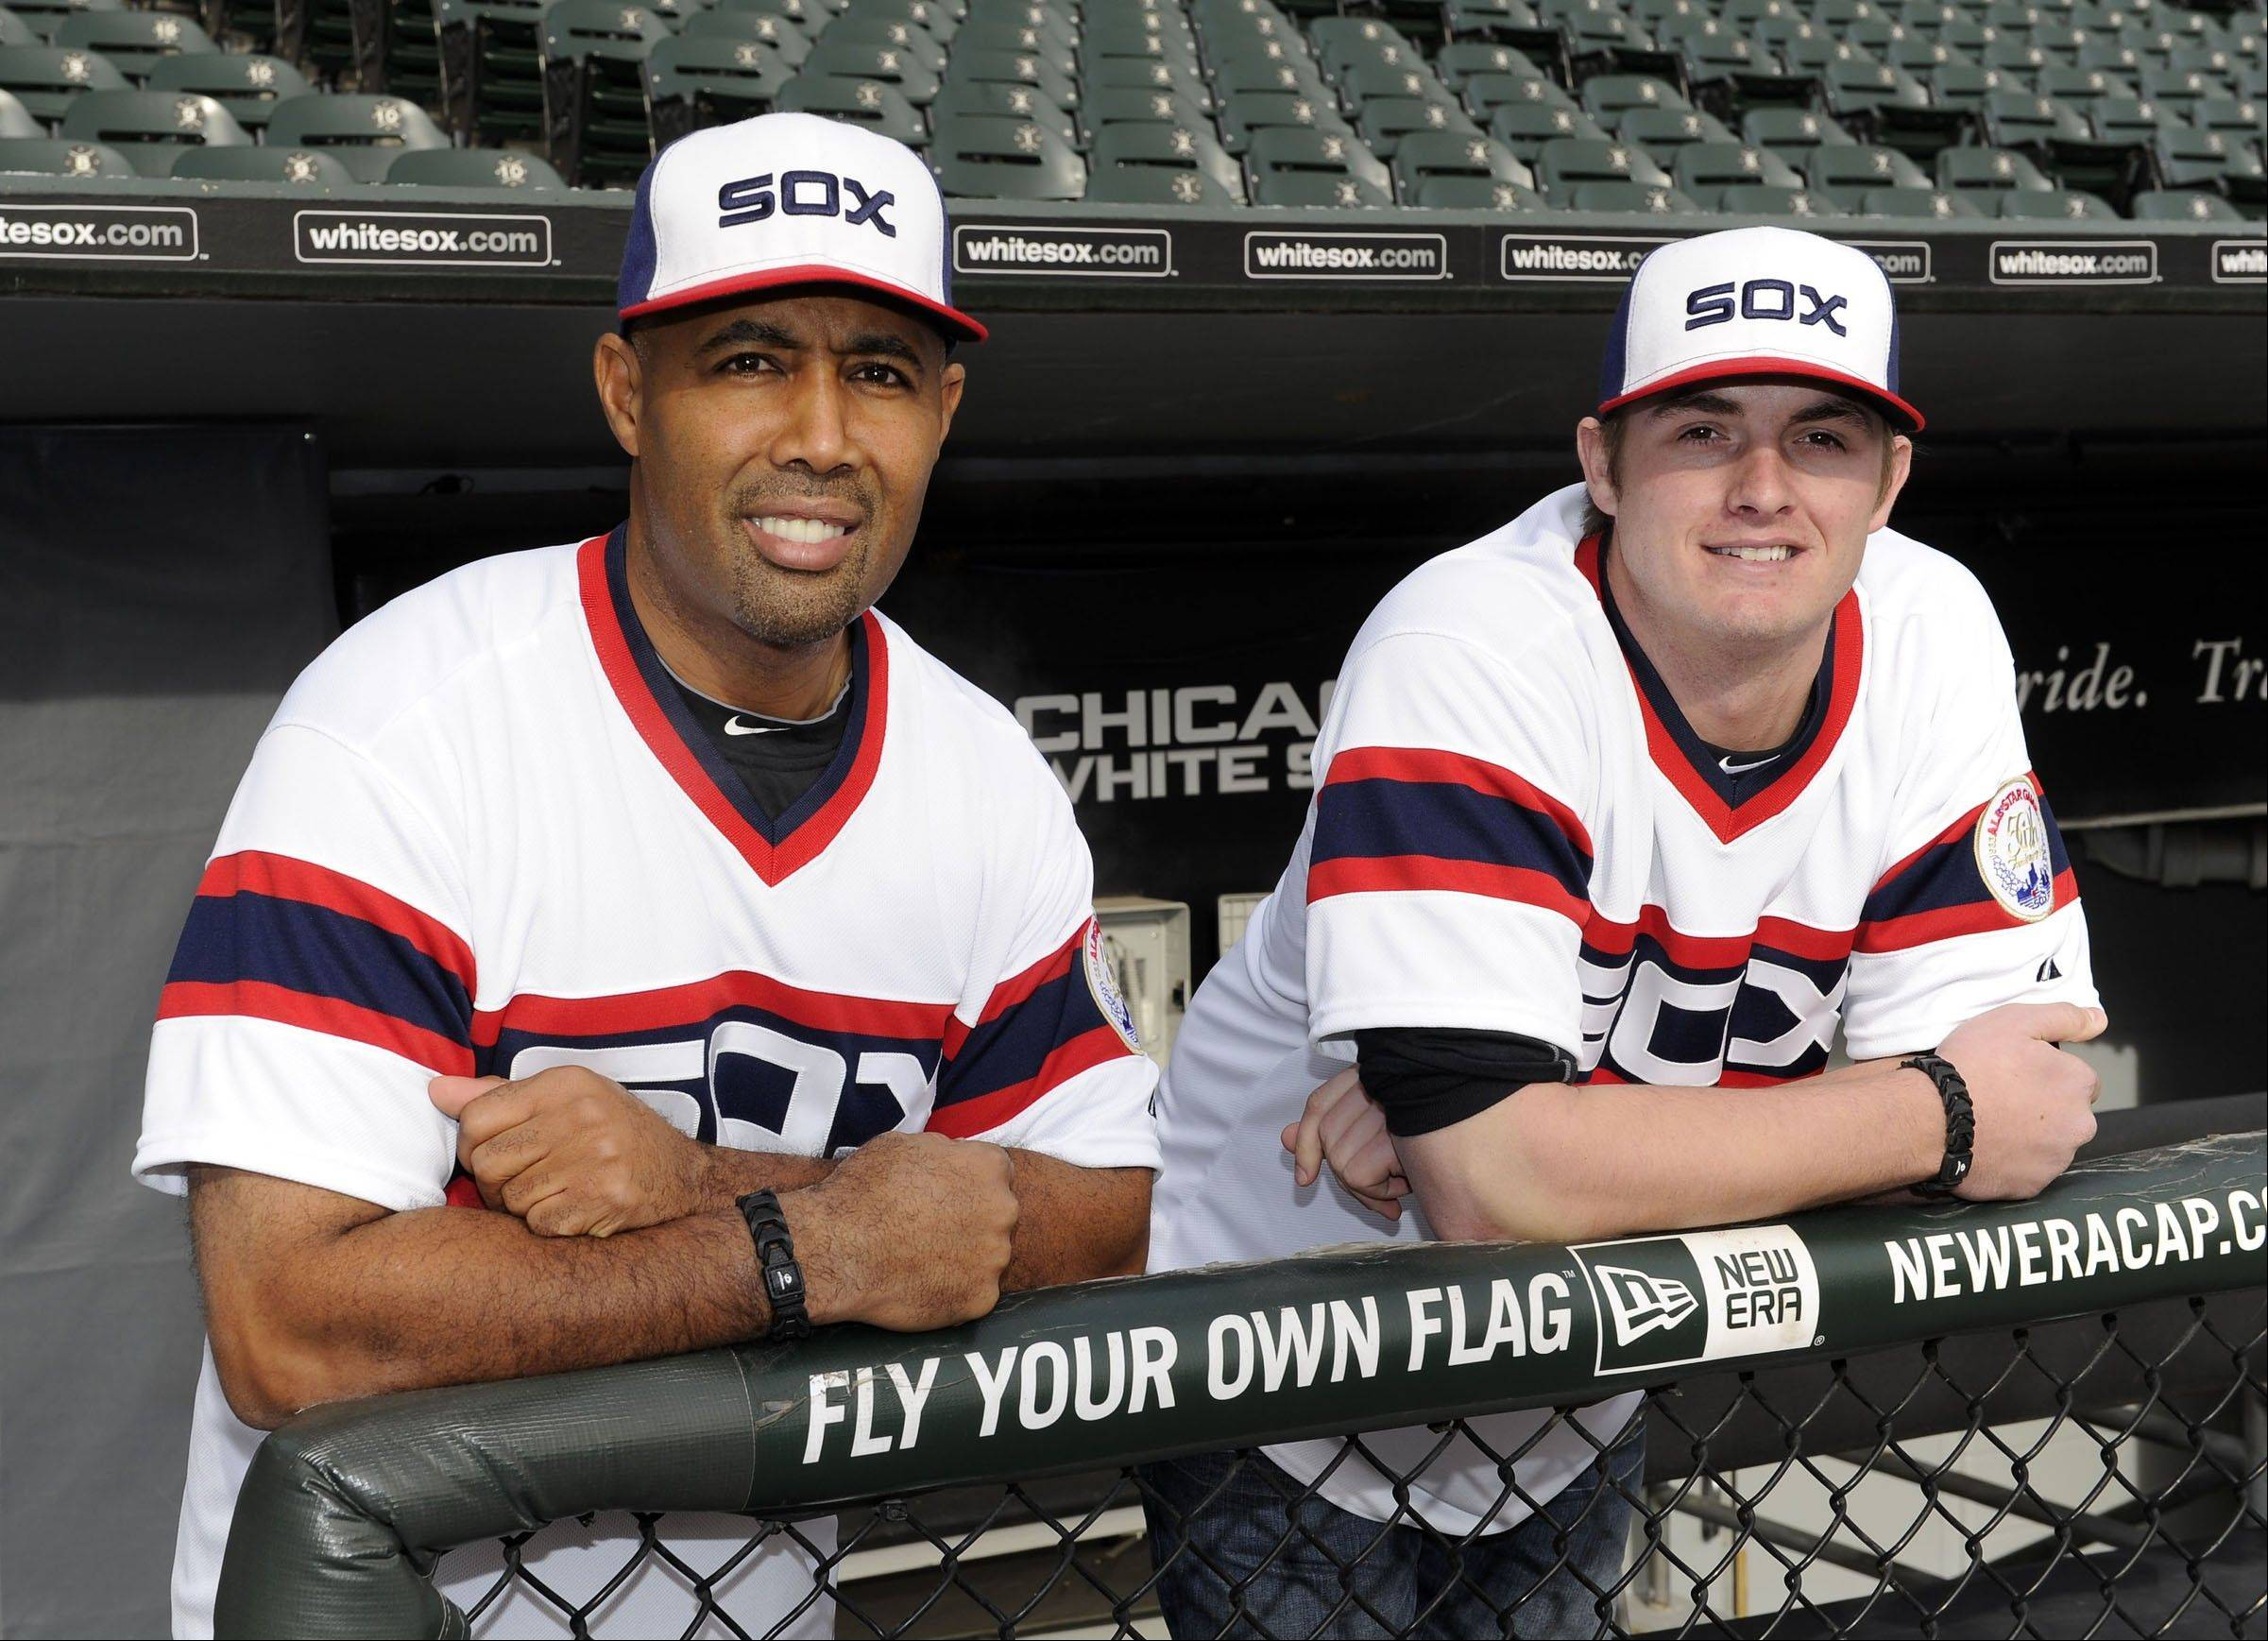 White Sox assistant hitting coach and former player Harold Baines, left, and pitcher Addison Reed show off the 1983 throwback uniforms the Sox will wear at Sunday home games in 2013.